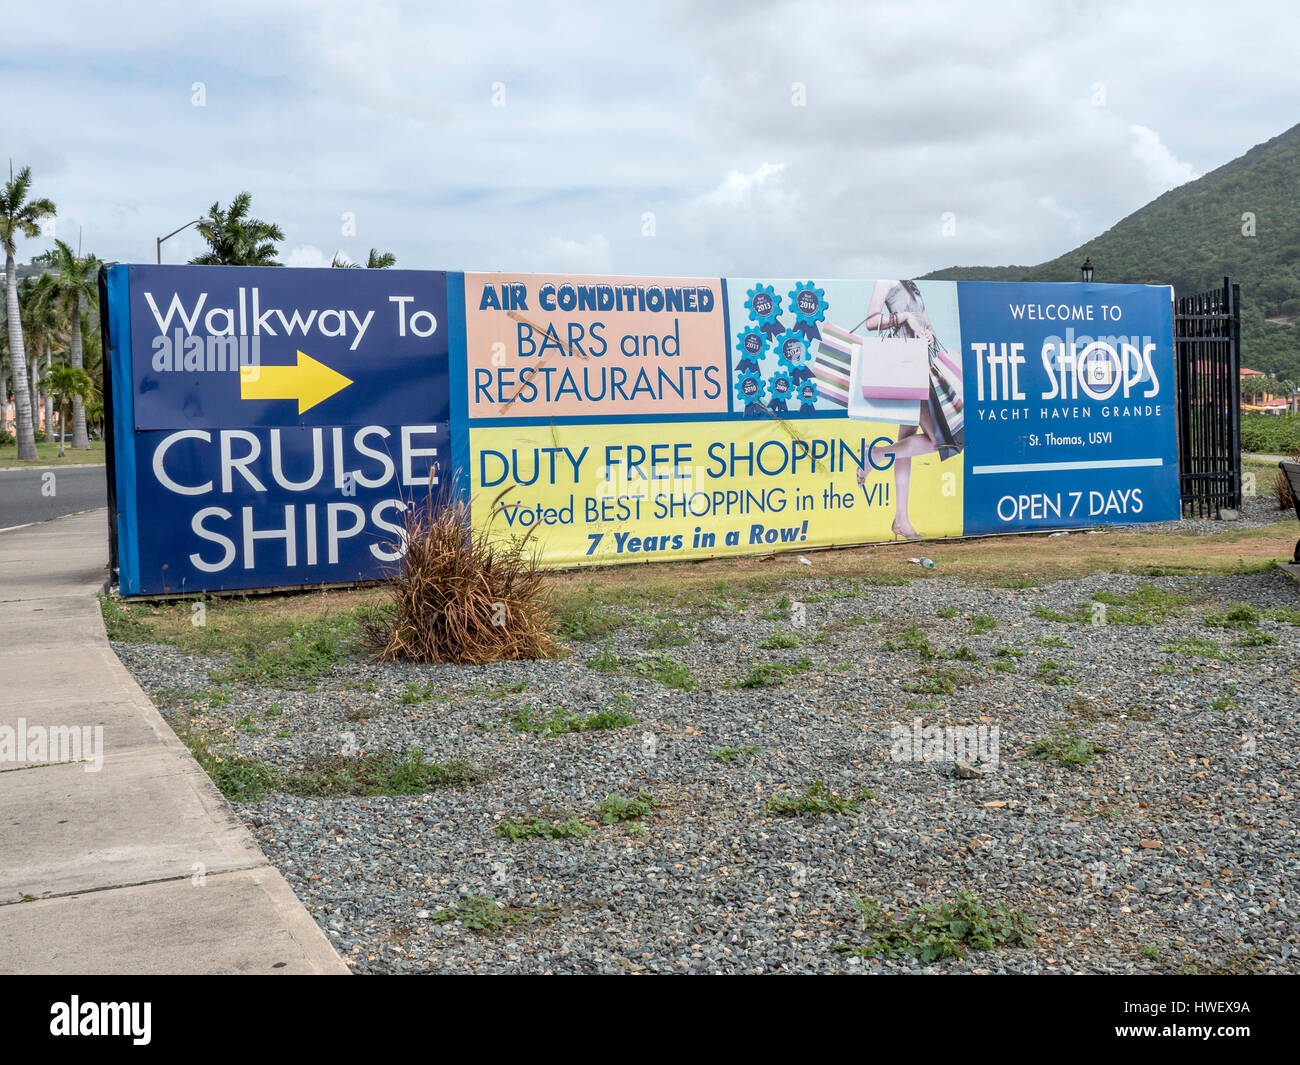 Signs To Yacht Haven Grande In Charlotte Amalie, St Thomas USVI, A Private Yacht Marina, Shopping Location And Cruise - Stock Image